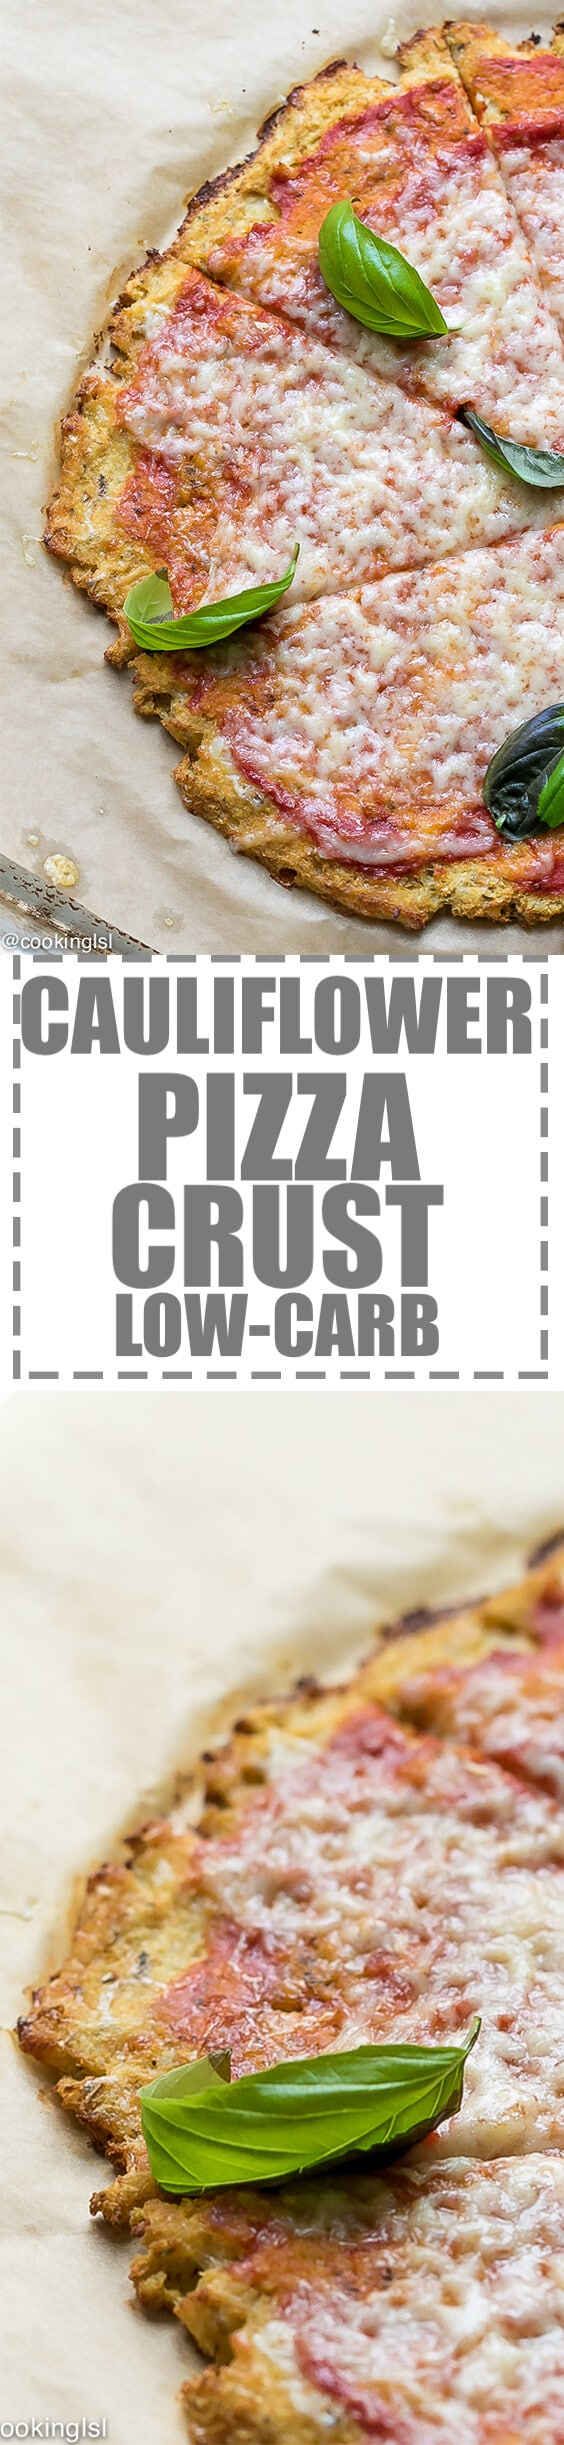 Easy Cauliflower Pizza Recipe - the best thin crust cauliflower cheese pizza, that is easy to make with just 5 simple ingredients. Low-carb and keto option included in the notes. A great way for kids and adults to enjoy more veggies.  #pizza #cauliflowerpizza #cauliflowerpizzacrust